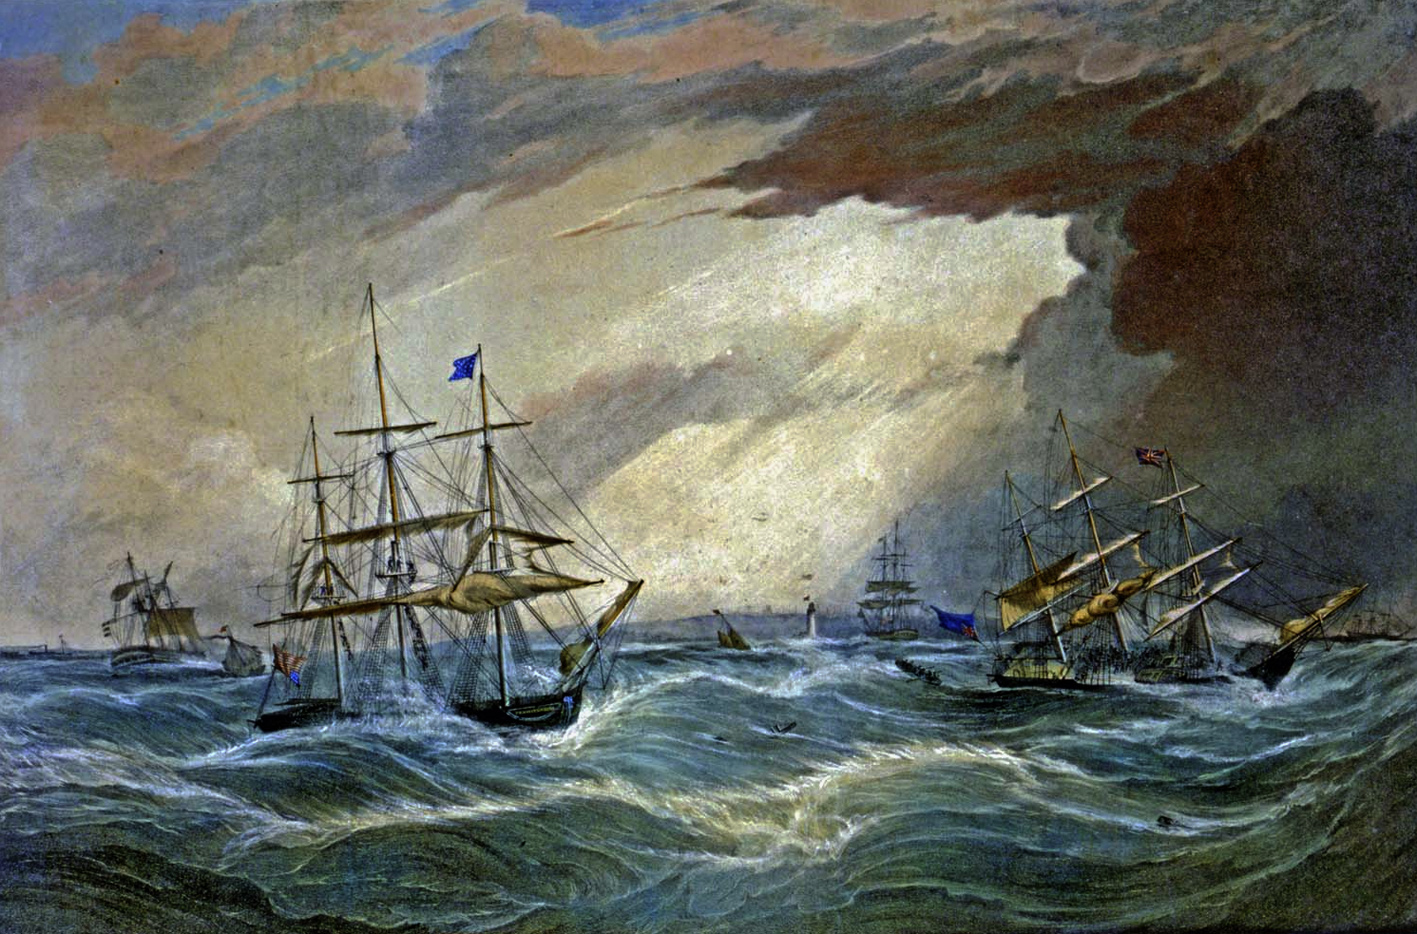 Ships off Liverpool in the Great Storm of 1839, painted by Samuel Walters.